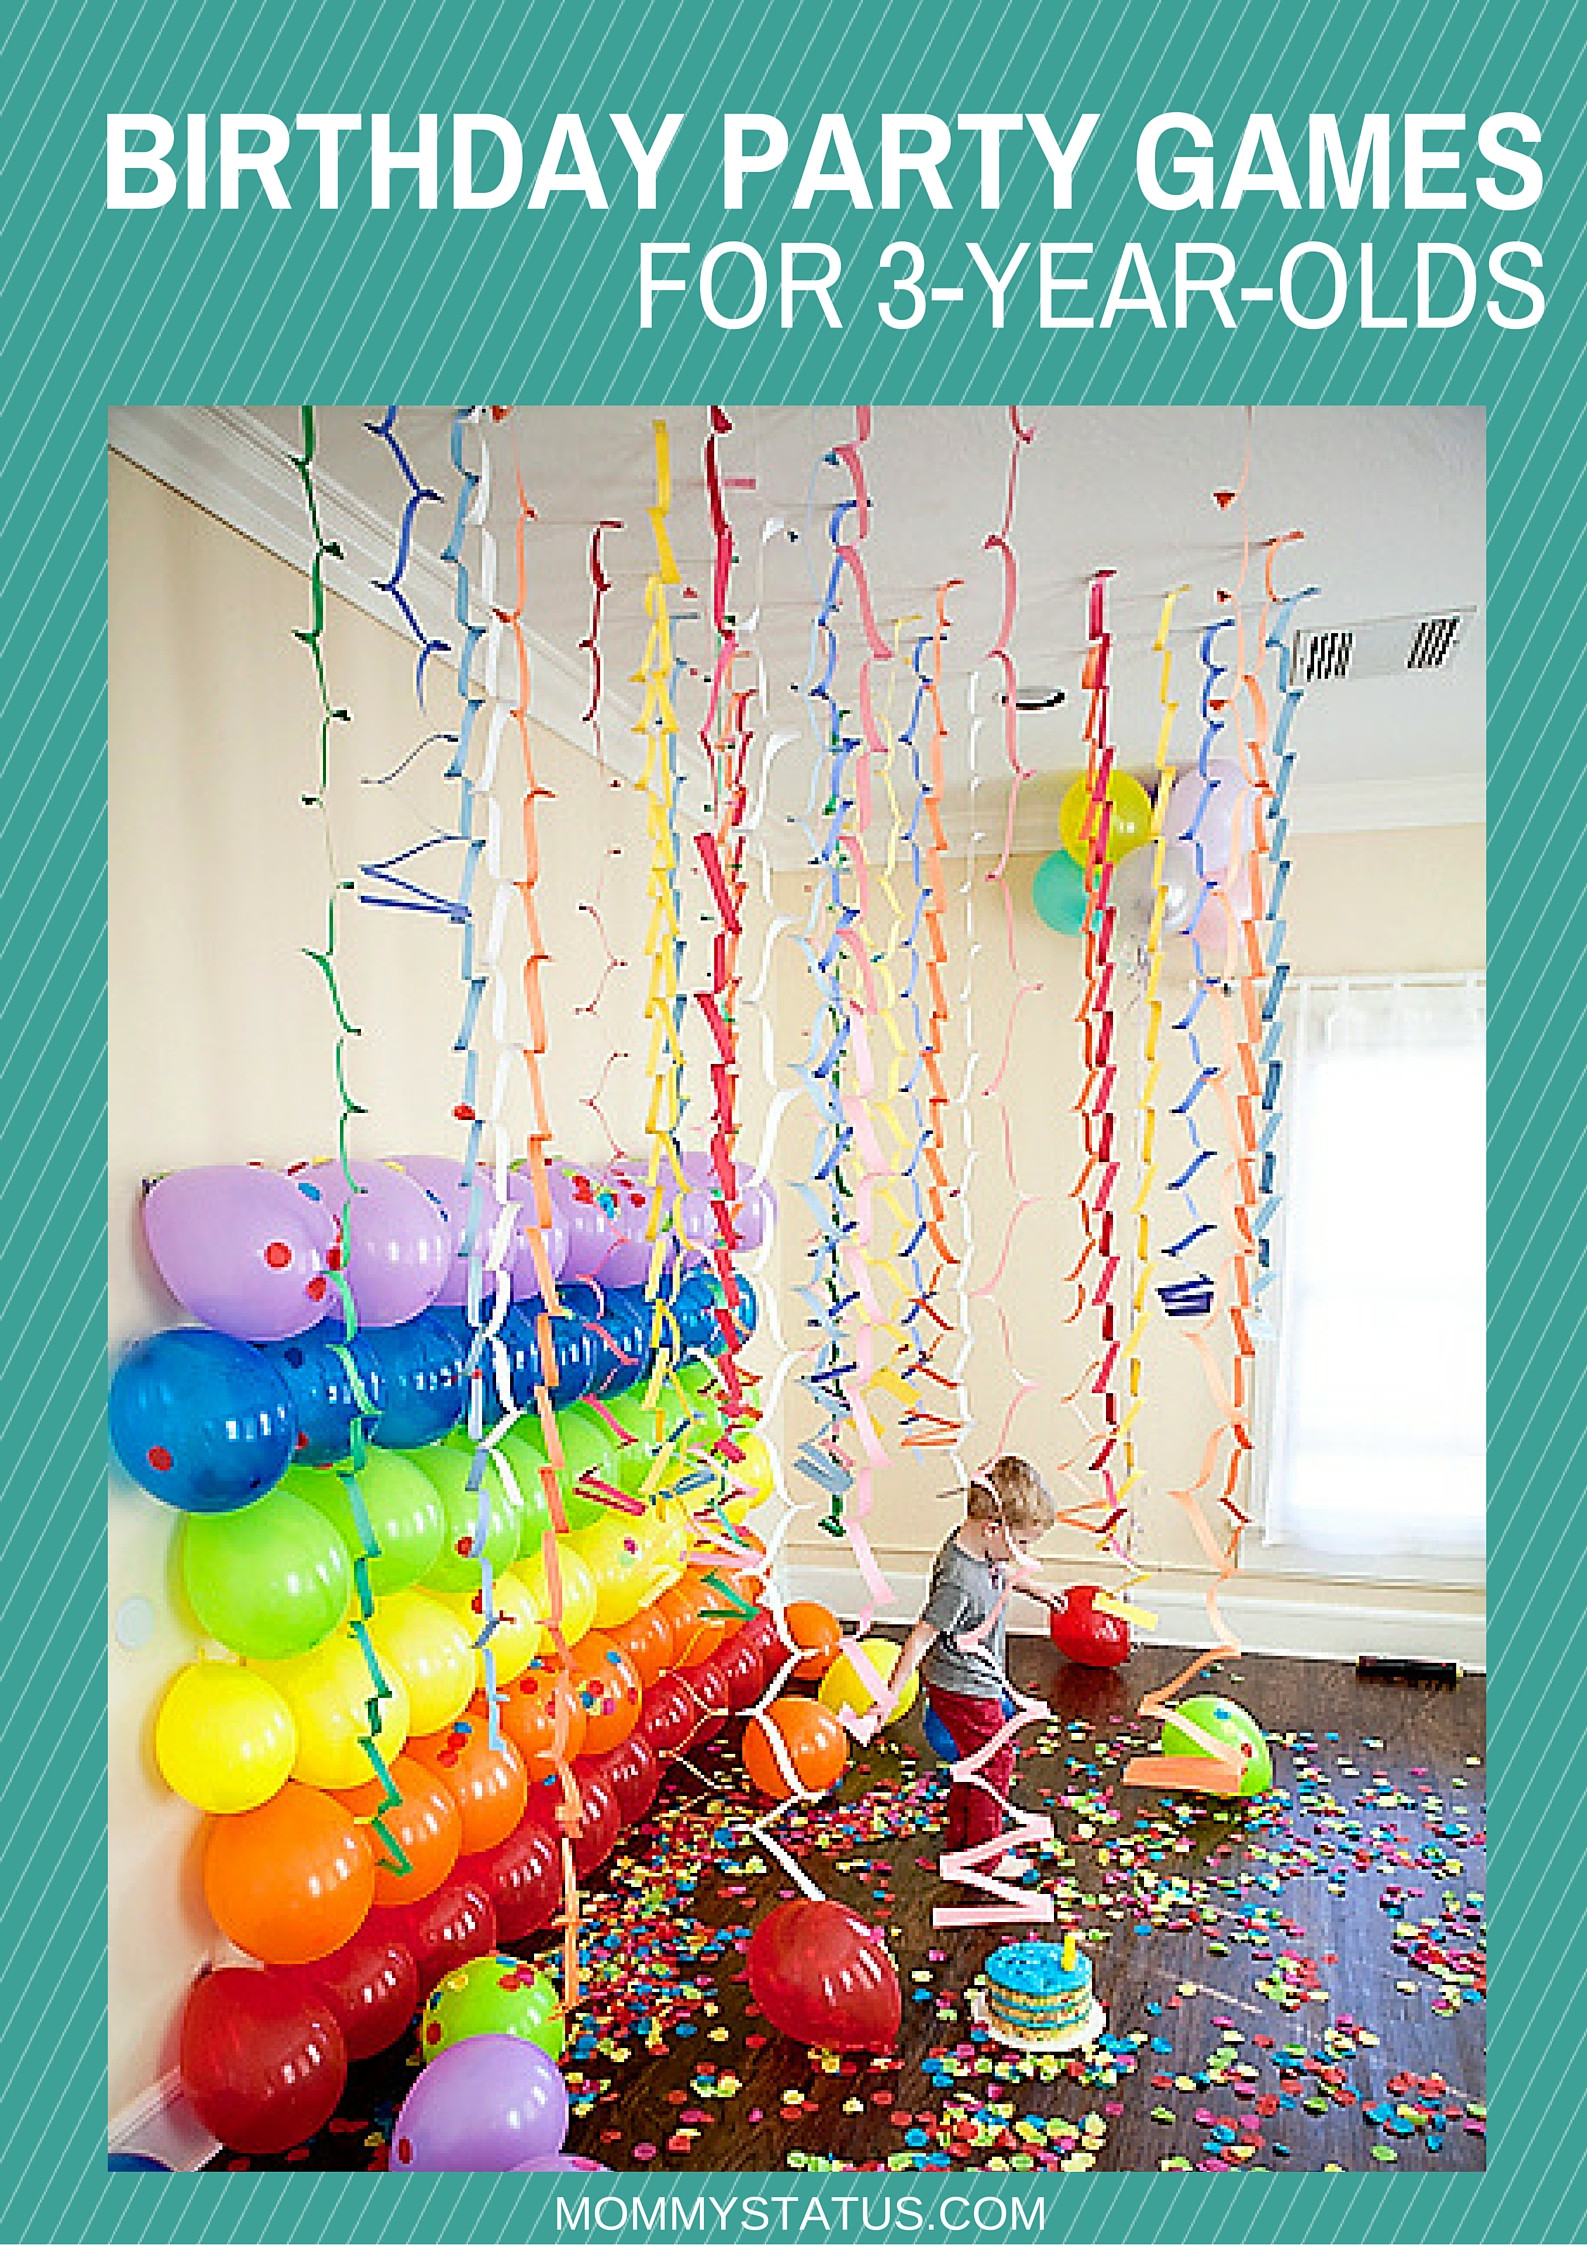 Games For Kids Bday Party  BIRTHDAY PARTY GAMES FOR 3 YEAR OLDS Mommy Status